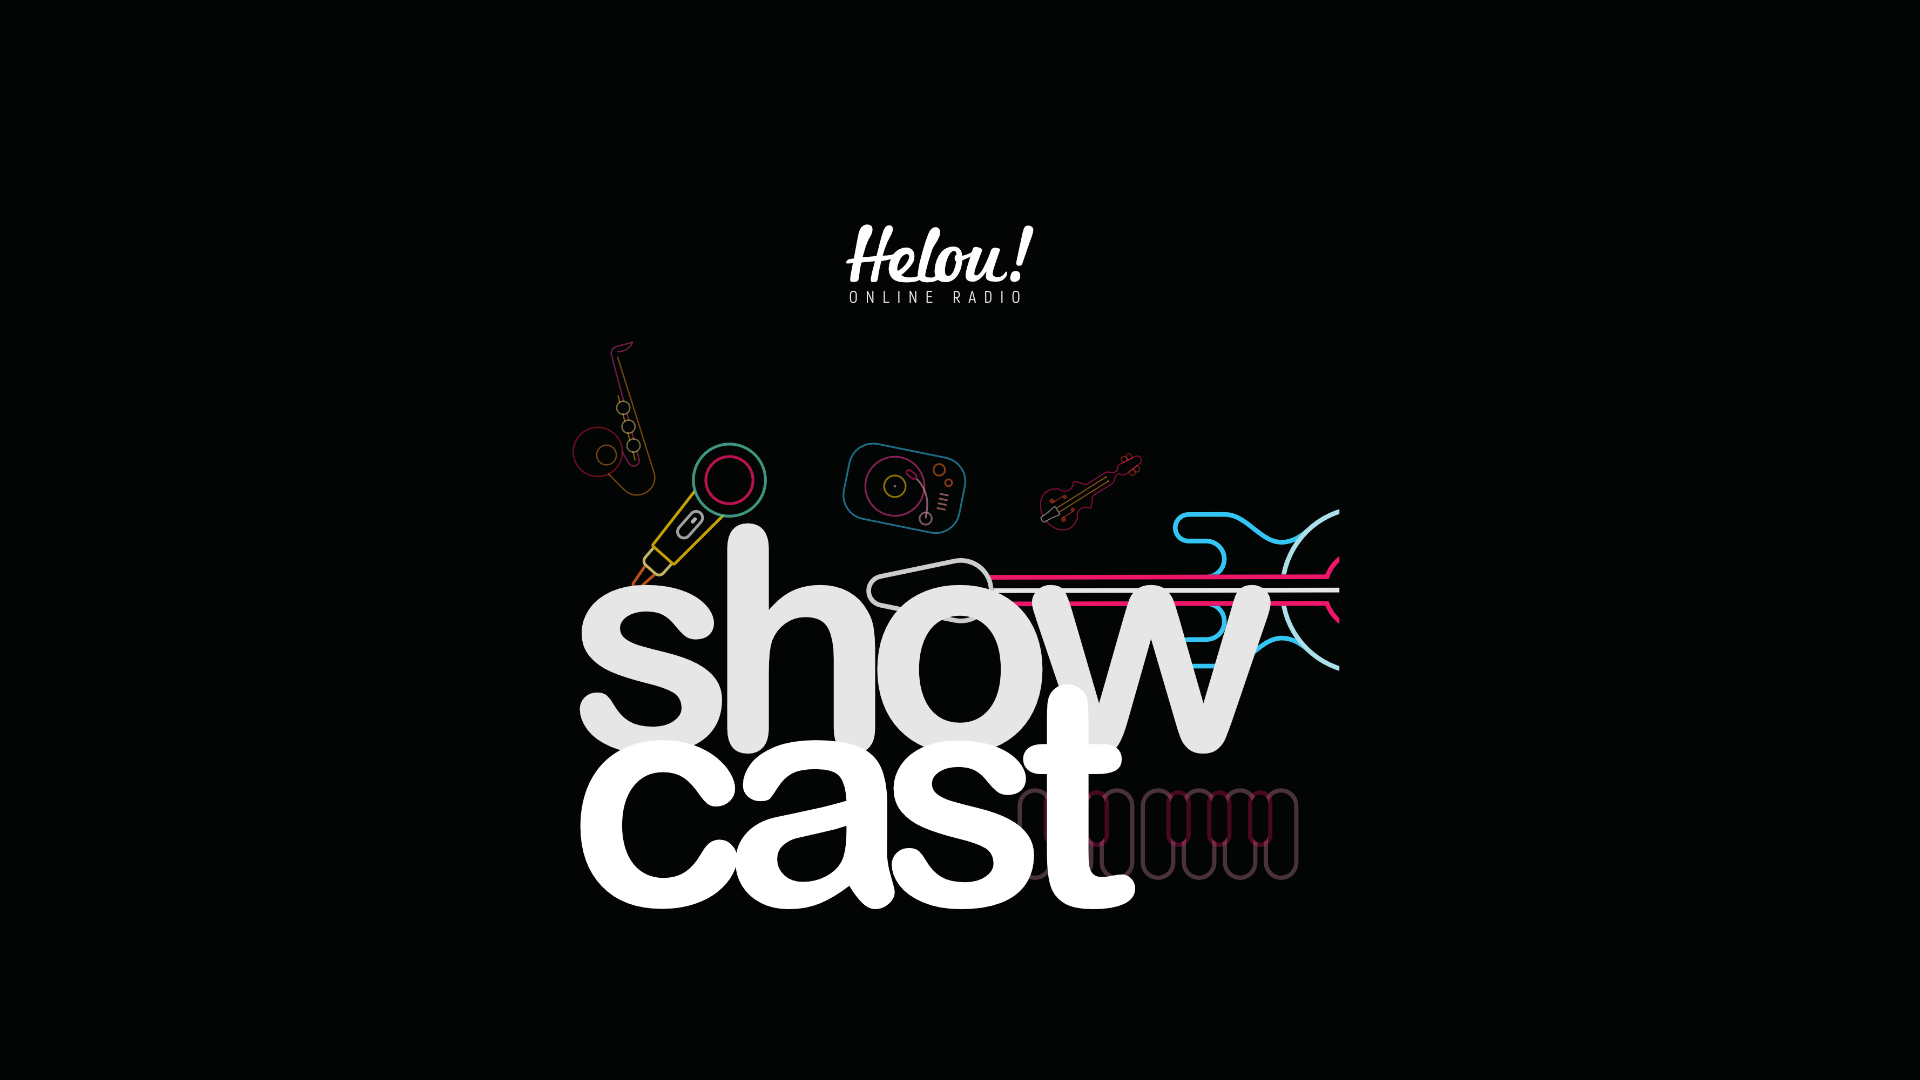 Rádio Helou! Showcast